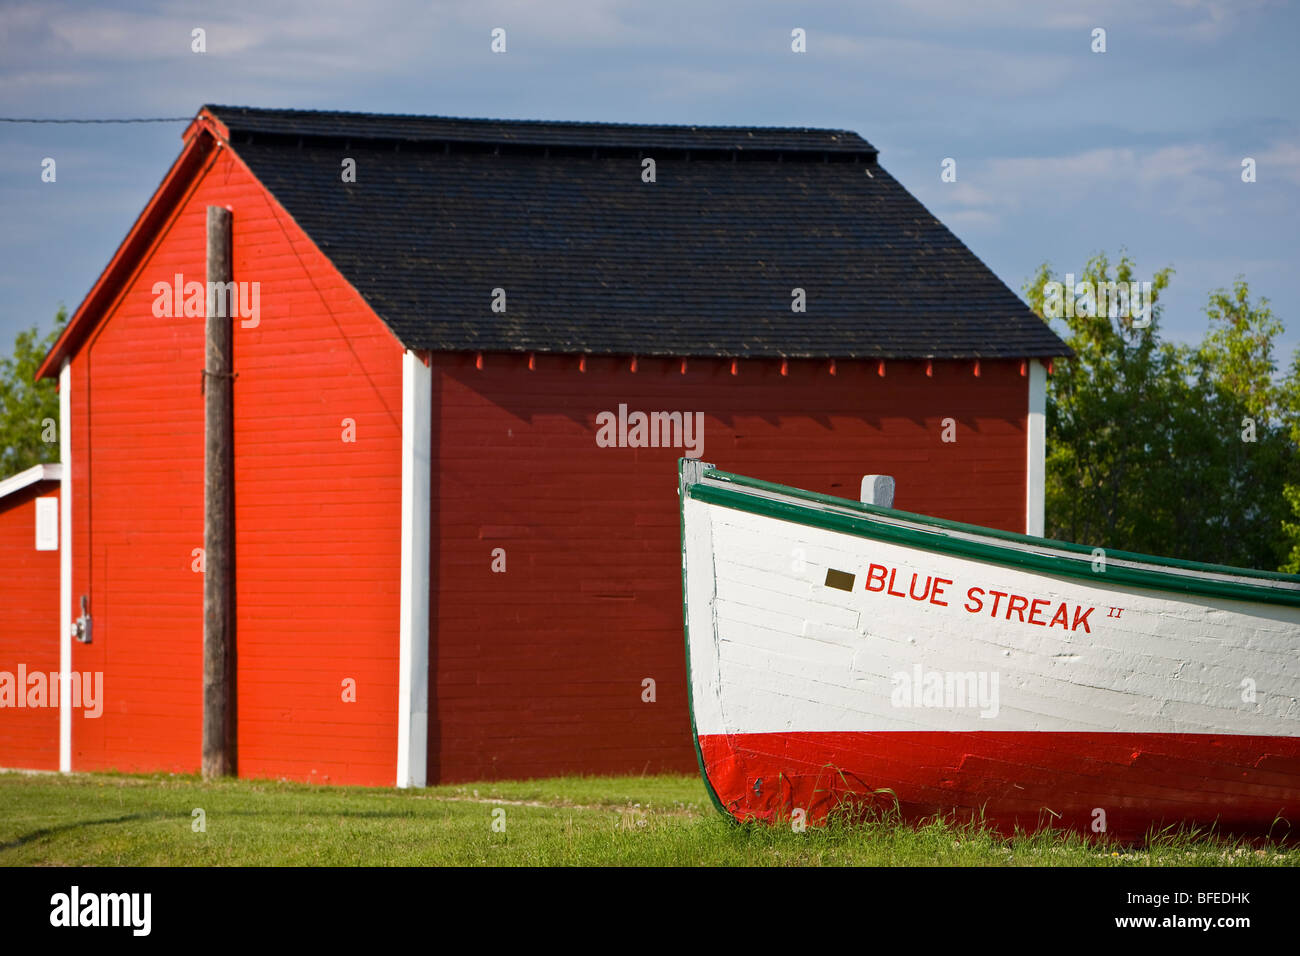 Red Boat Shed Stock Photos & Red Boat Shed Stock Images - Alamy